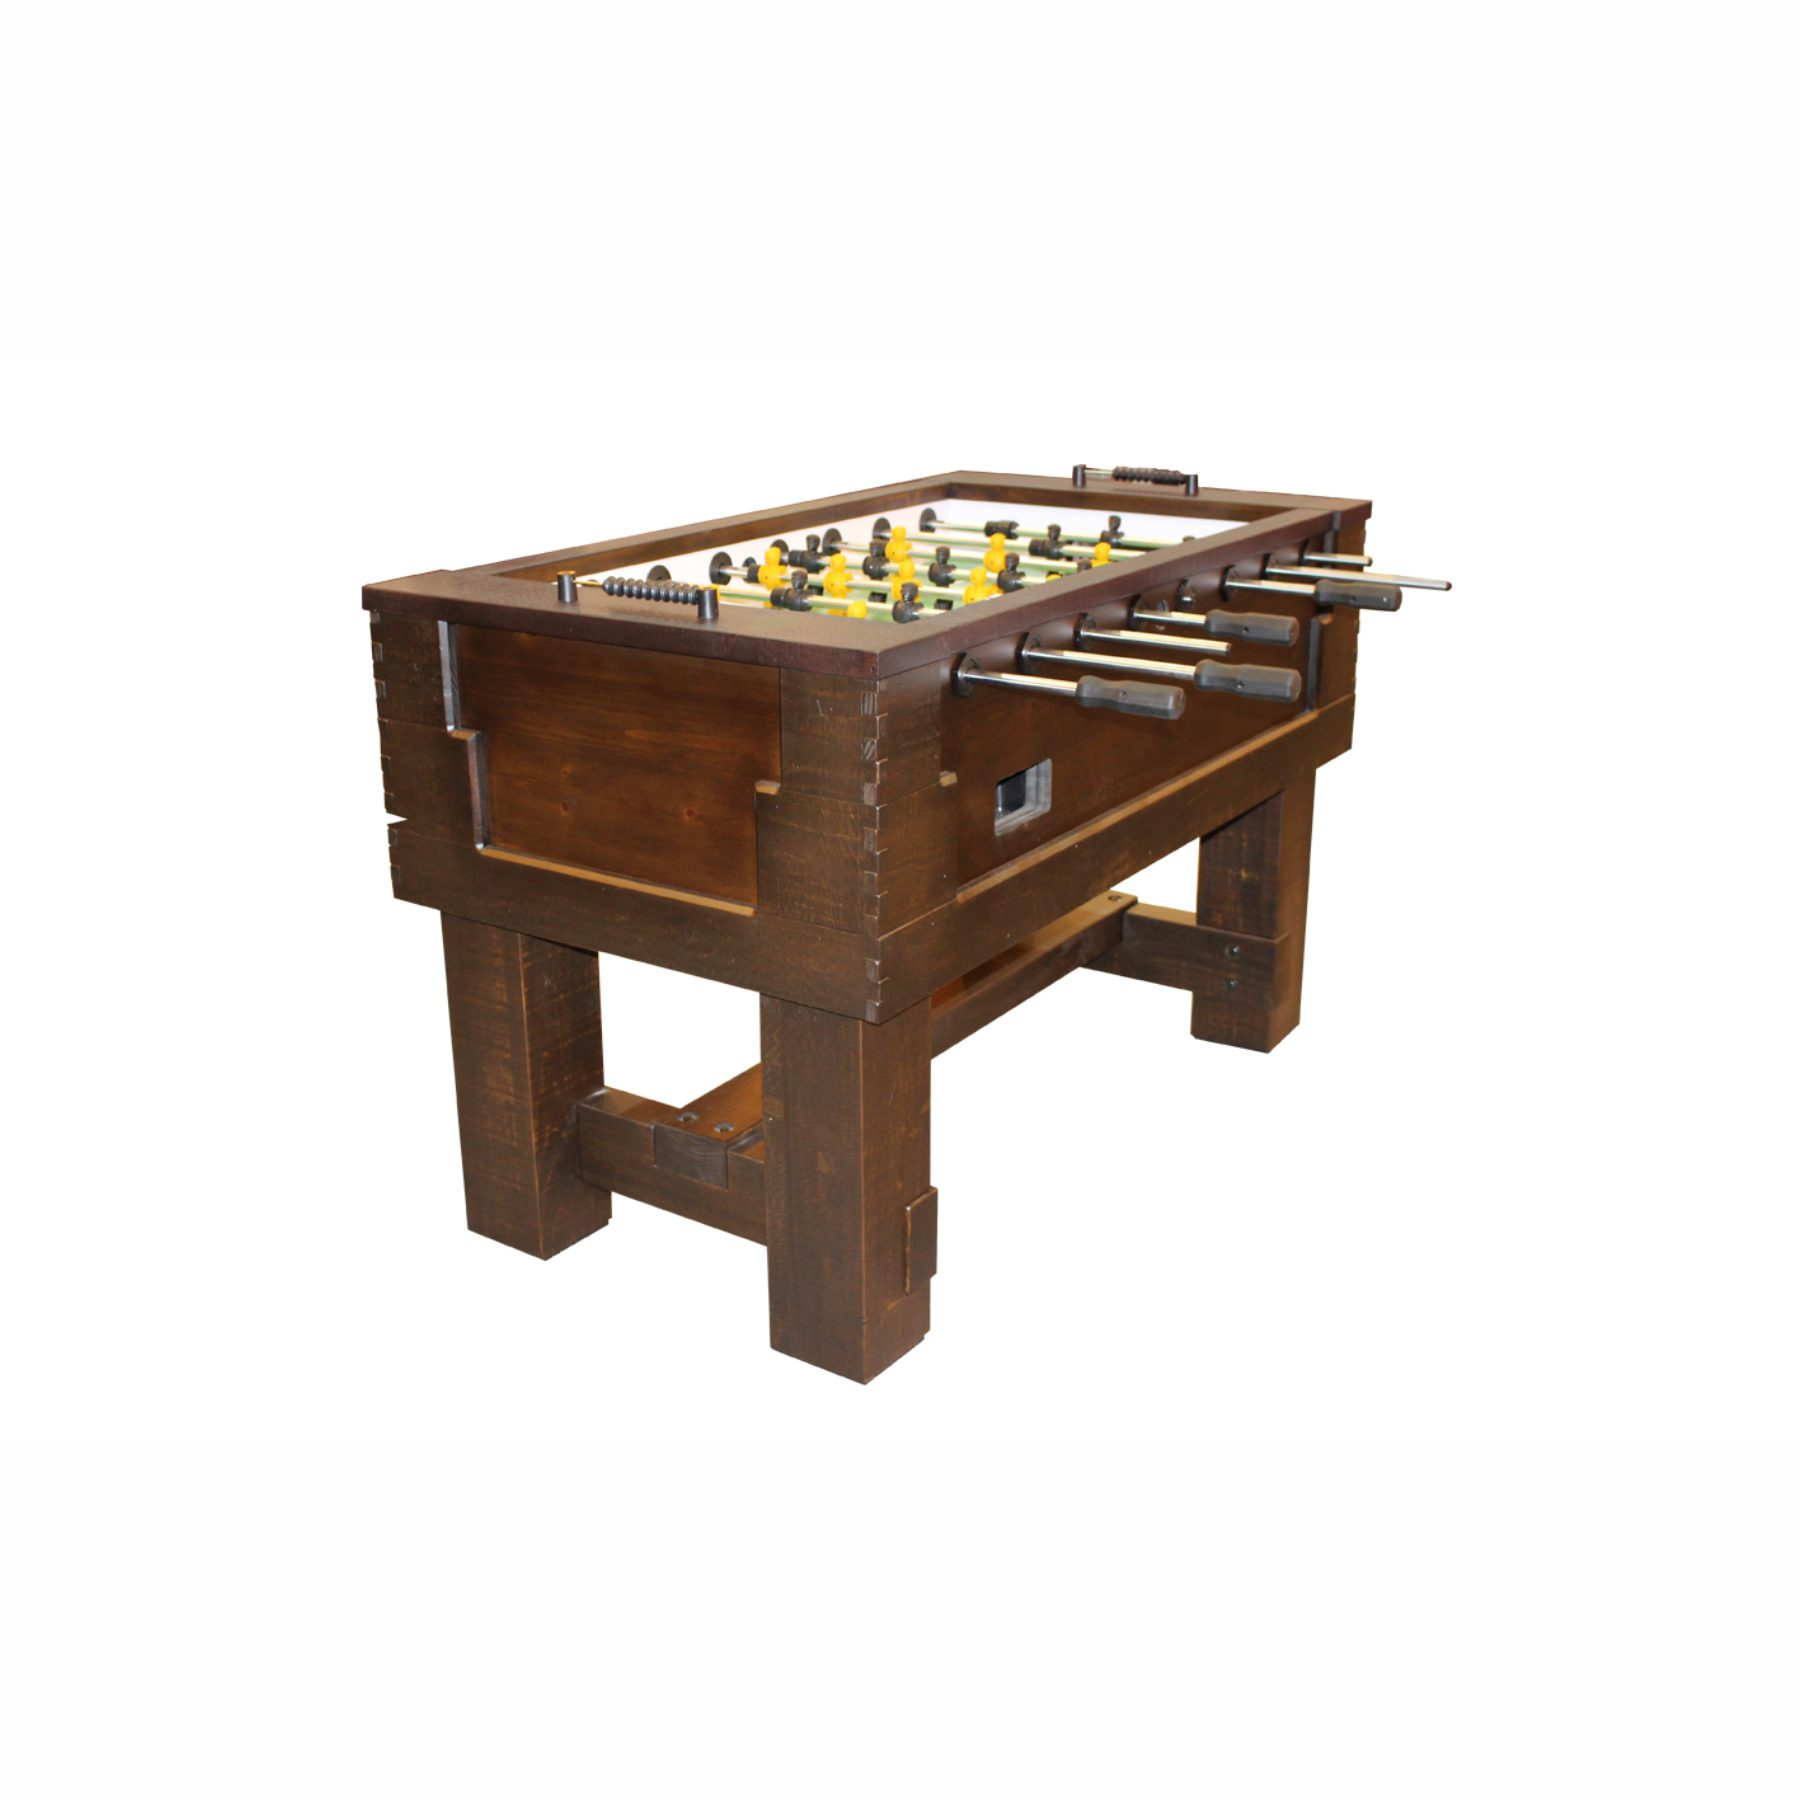 Breckenridge-Foosball-Table-Olhausen